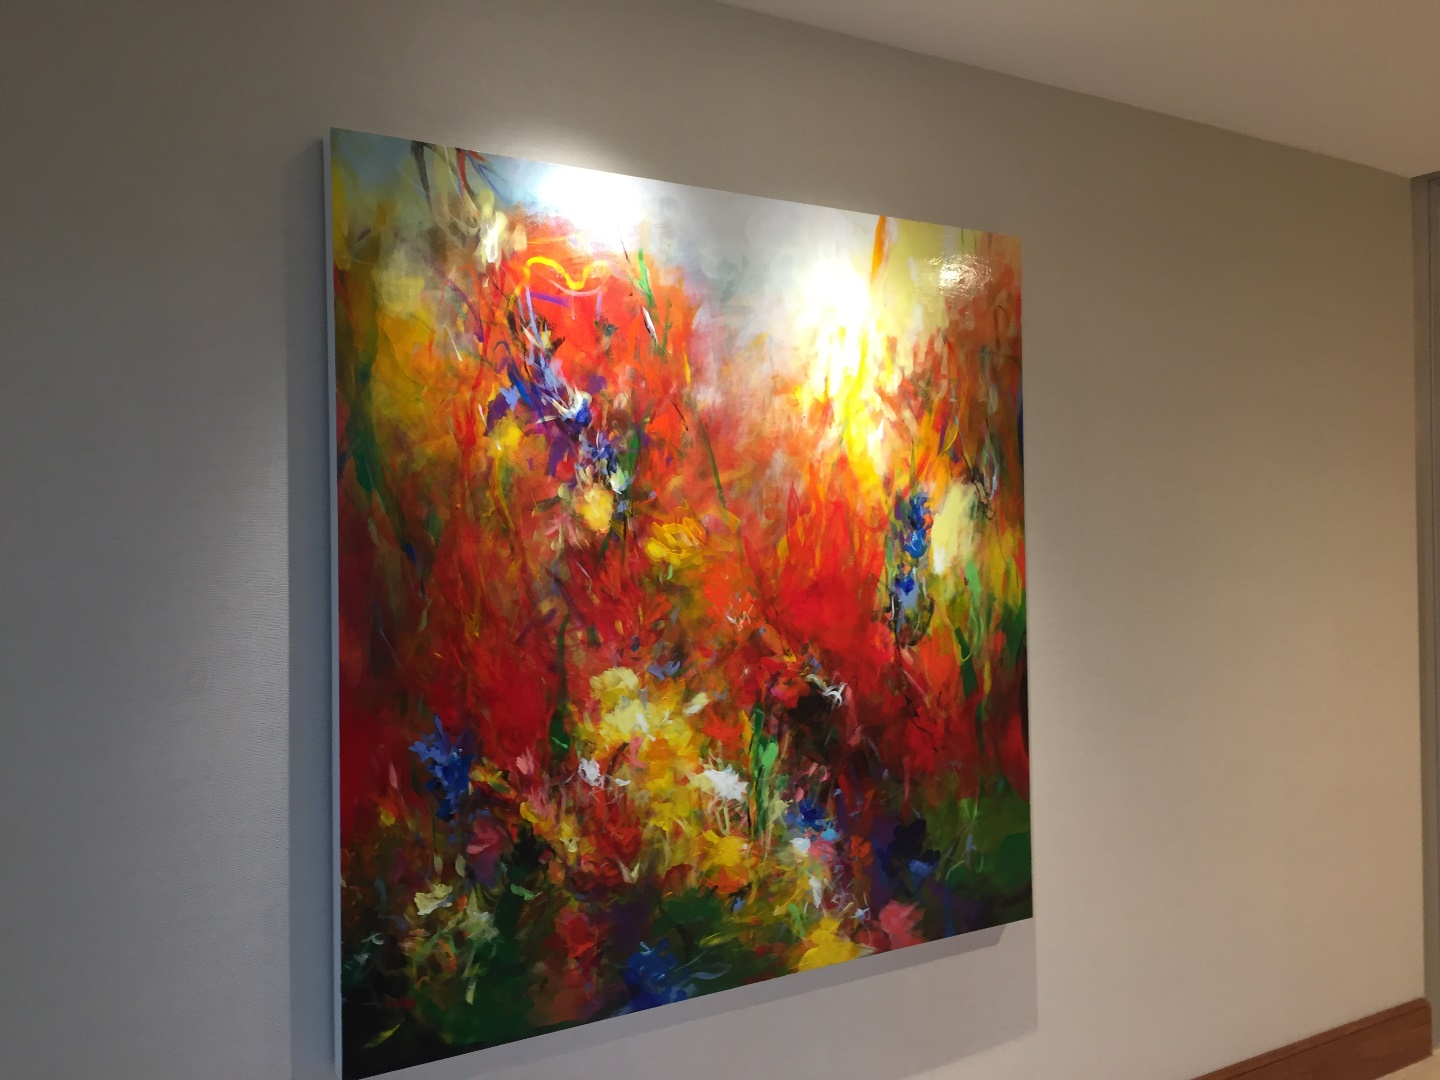 Shipping paintings or other artworks